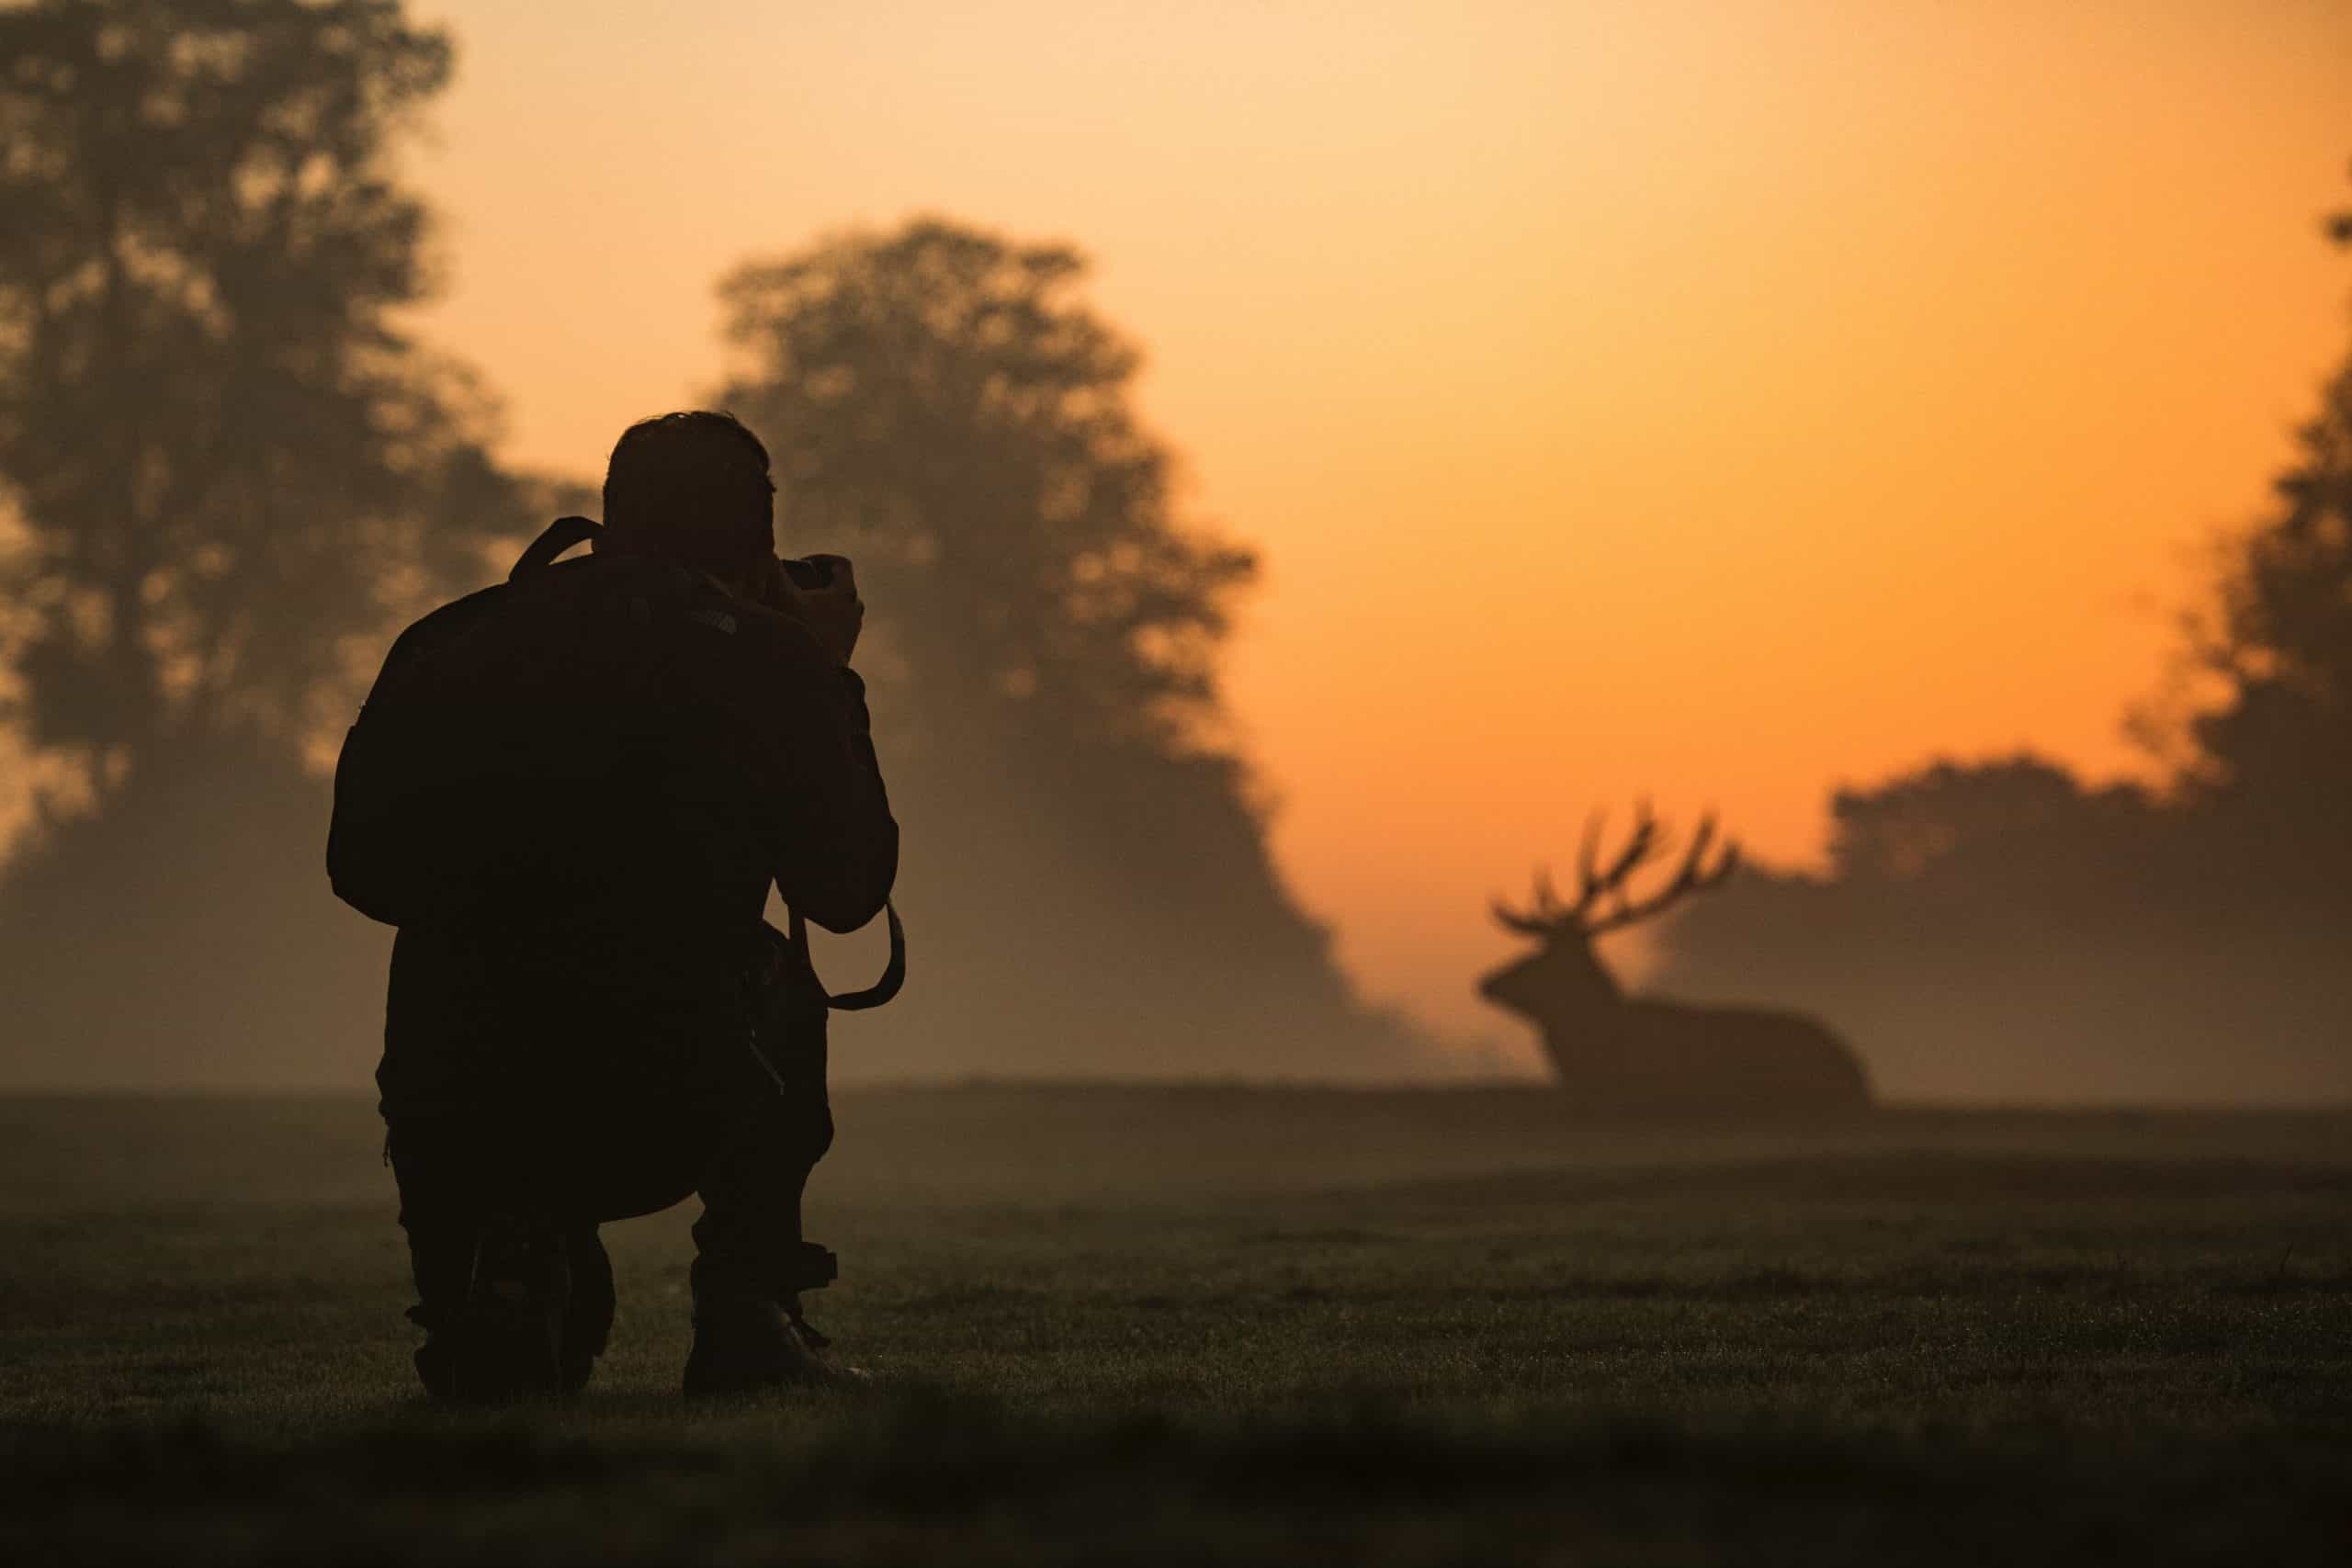 Enhance Your Wildlife Photography Skills With These Tips